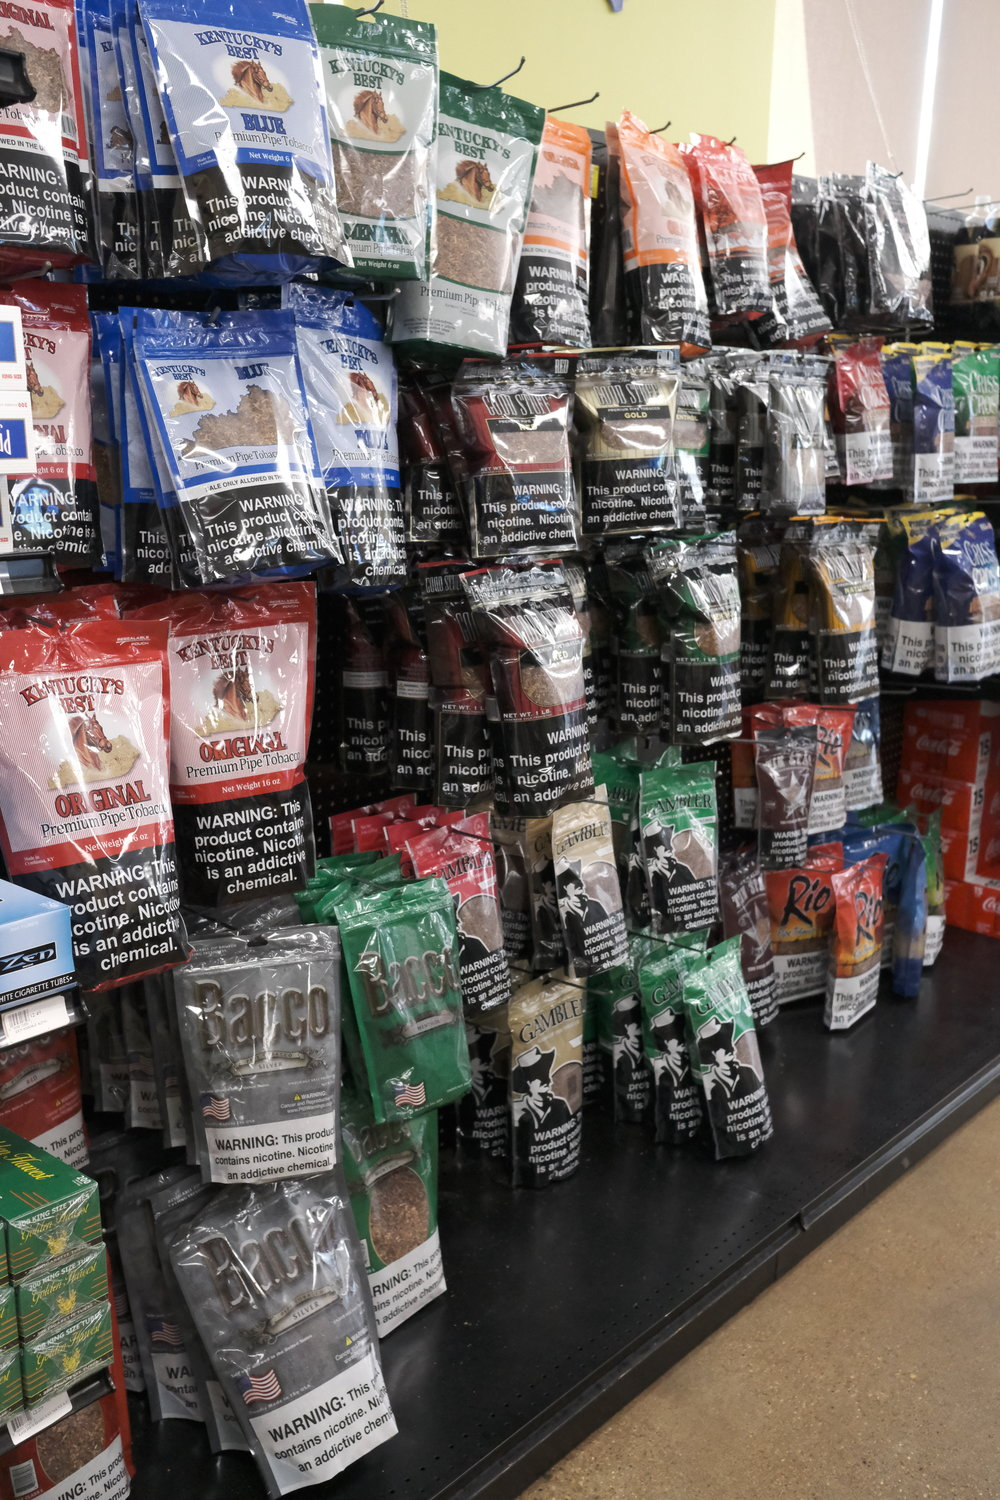 Stop in for your self-rolling tobacco needs! We have bagged tobaccos, filters, tubes, rollers and papers, and if you need anything else - just ask!